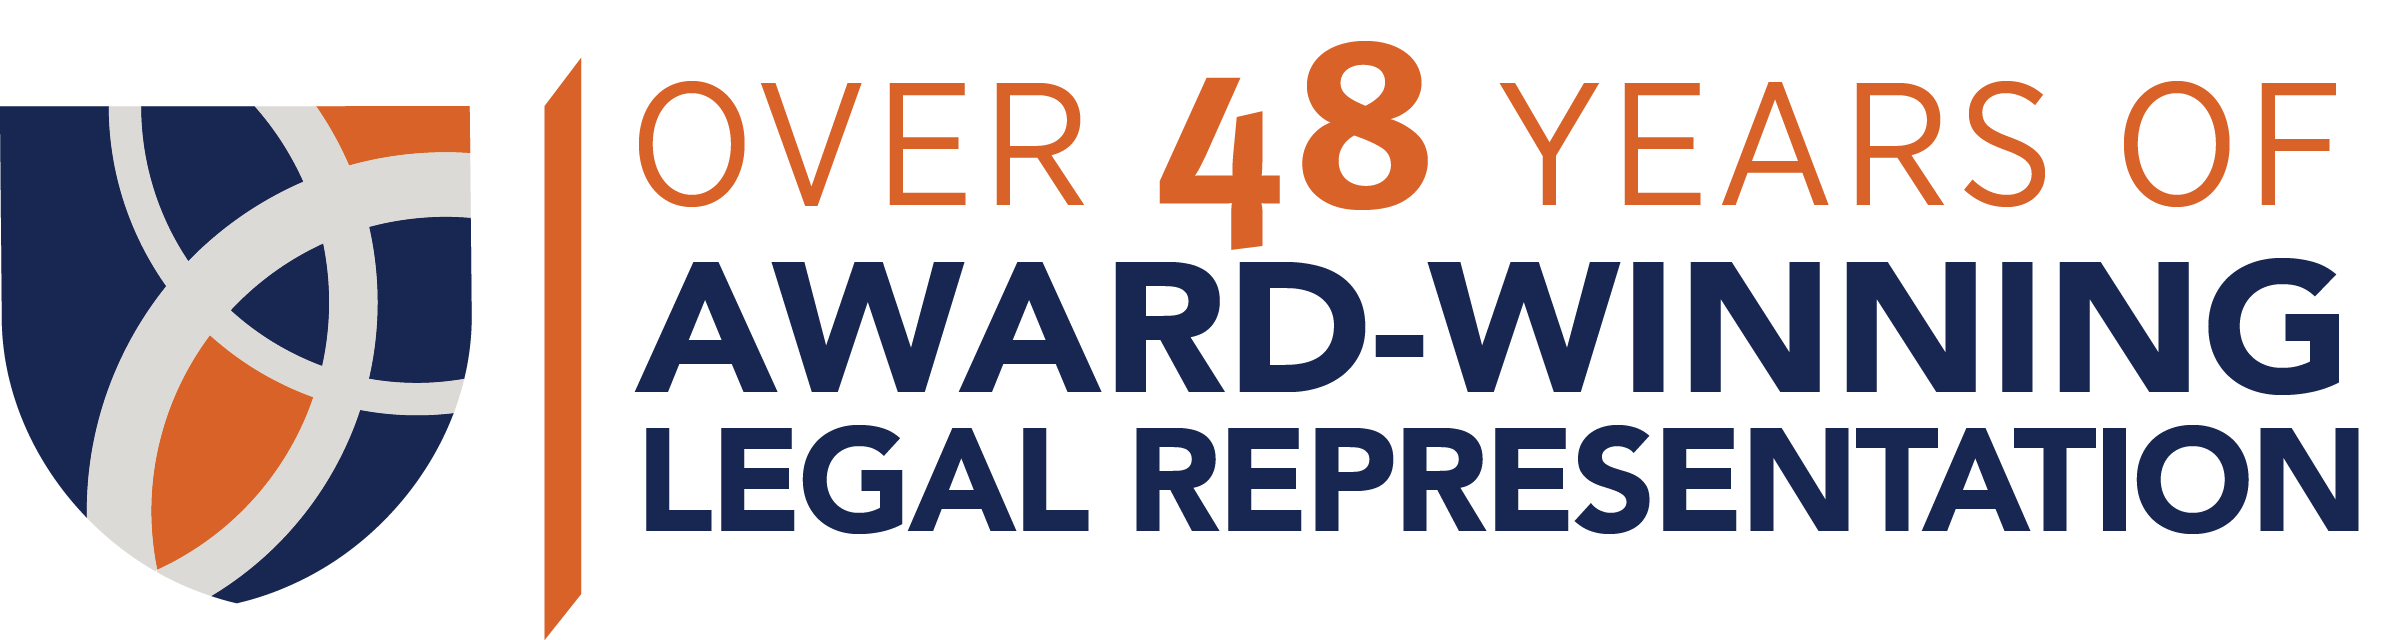 Over 48 years of award-winning legal representation